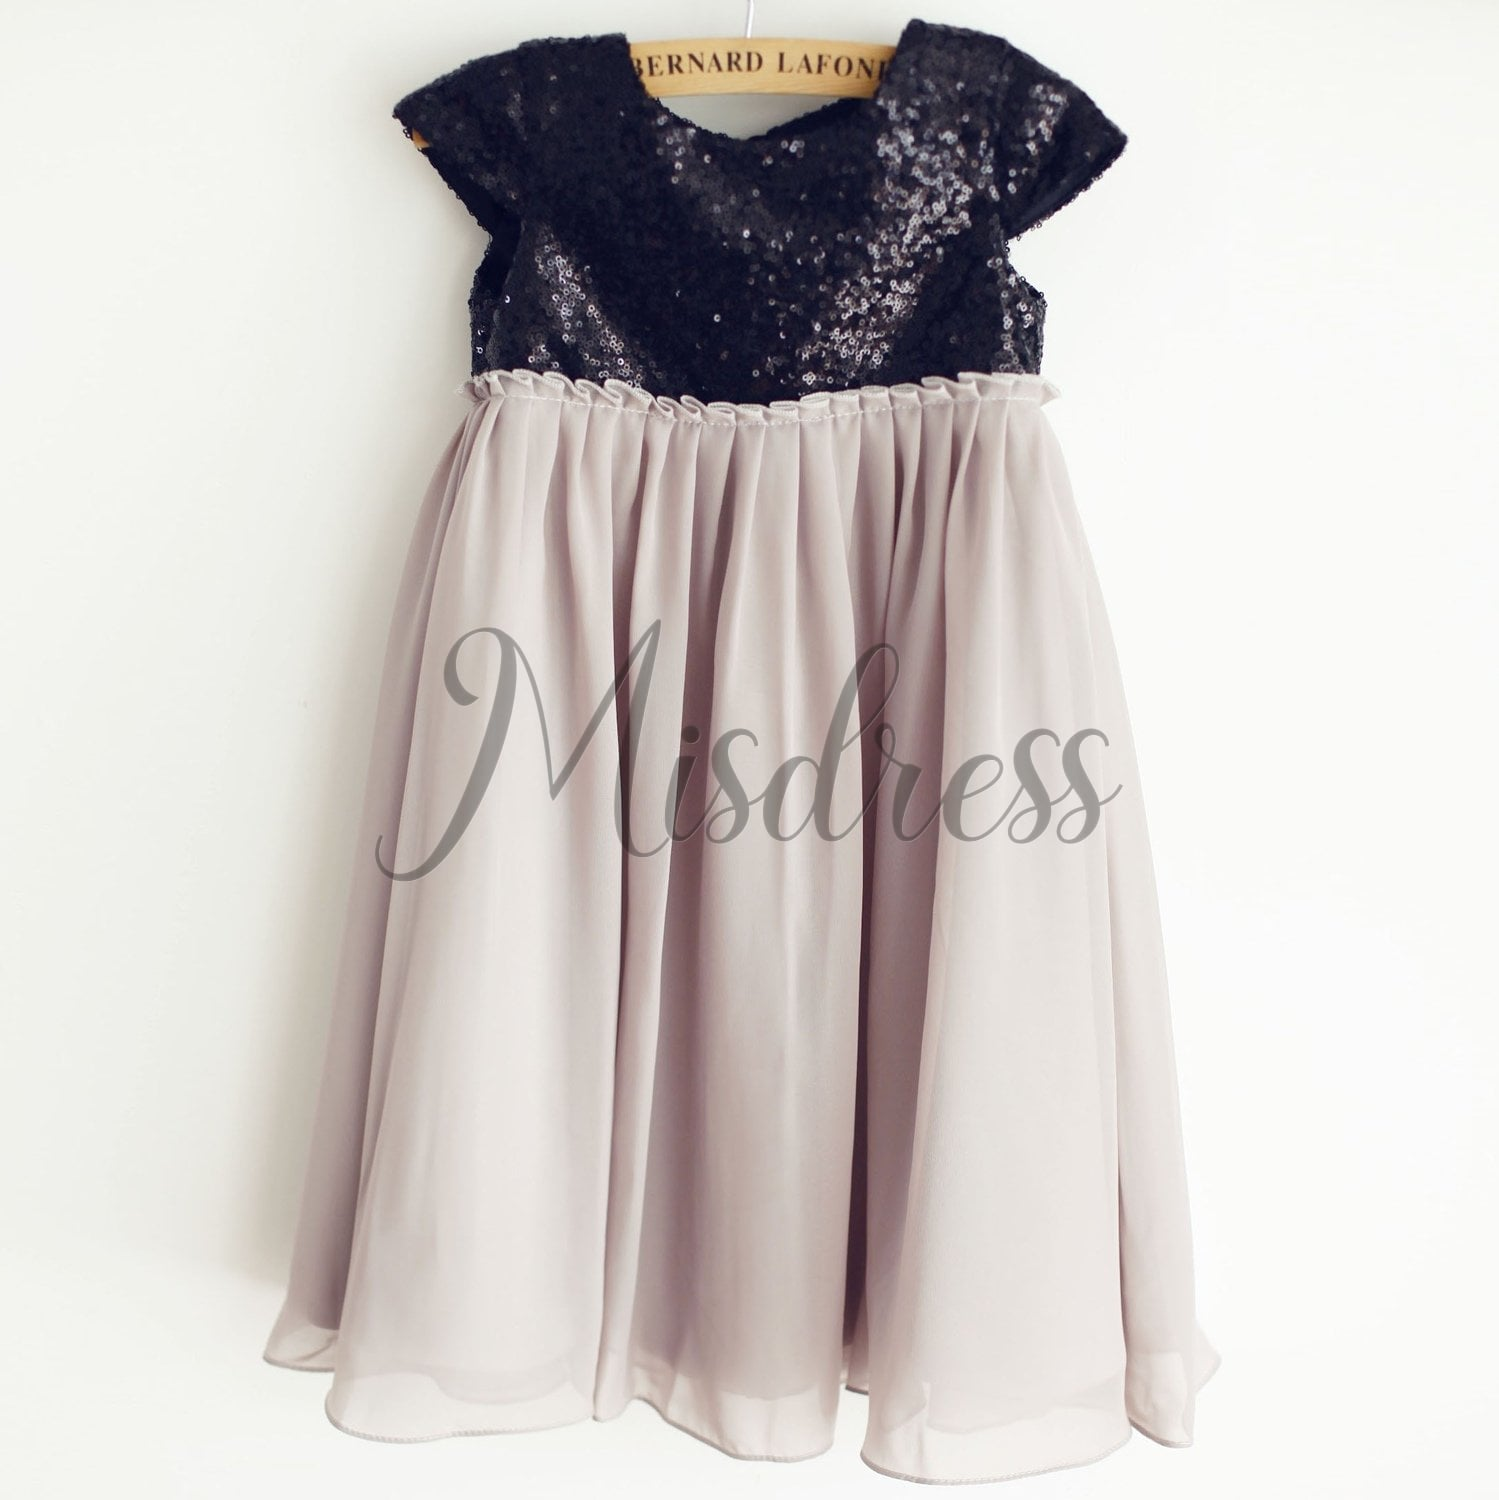 Black Sequin Gray Chiffon Cap Sleeves Wedding Flower Girl Dress - Flower Girl Dresses